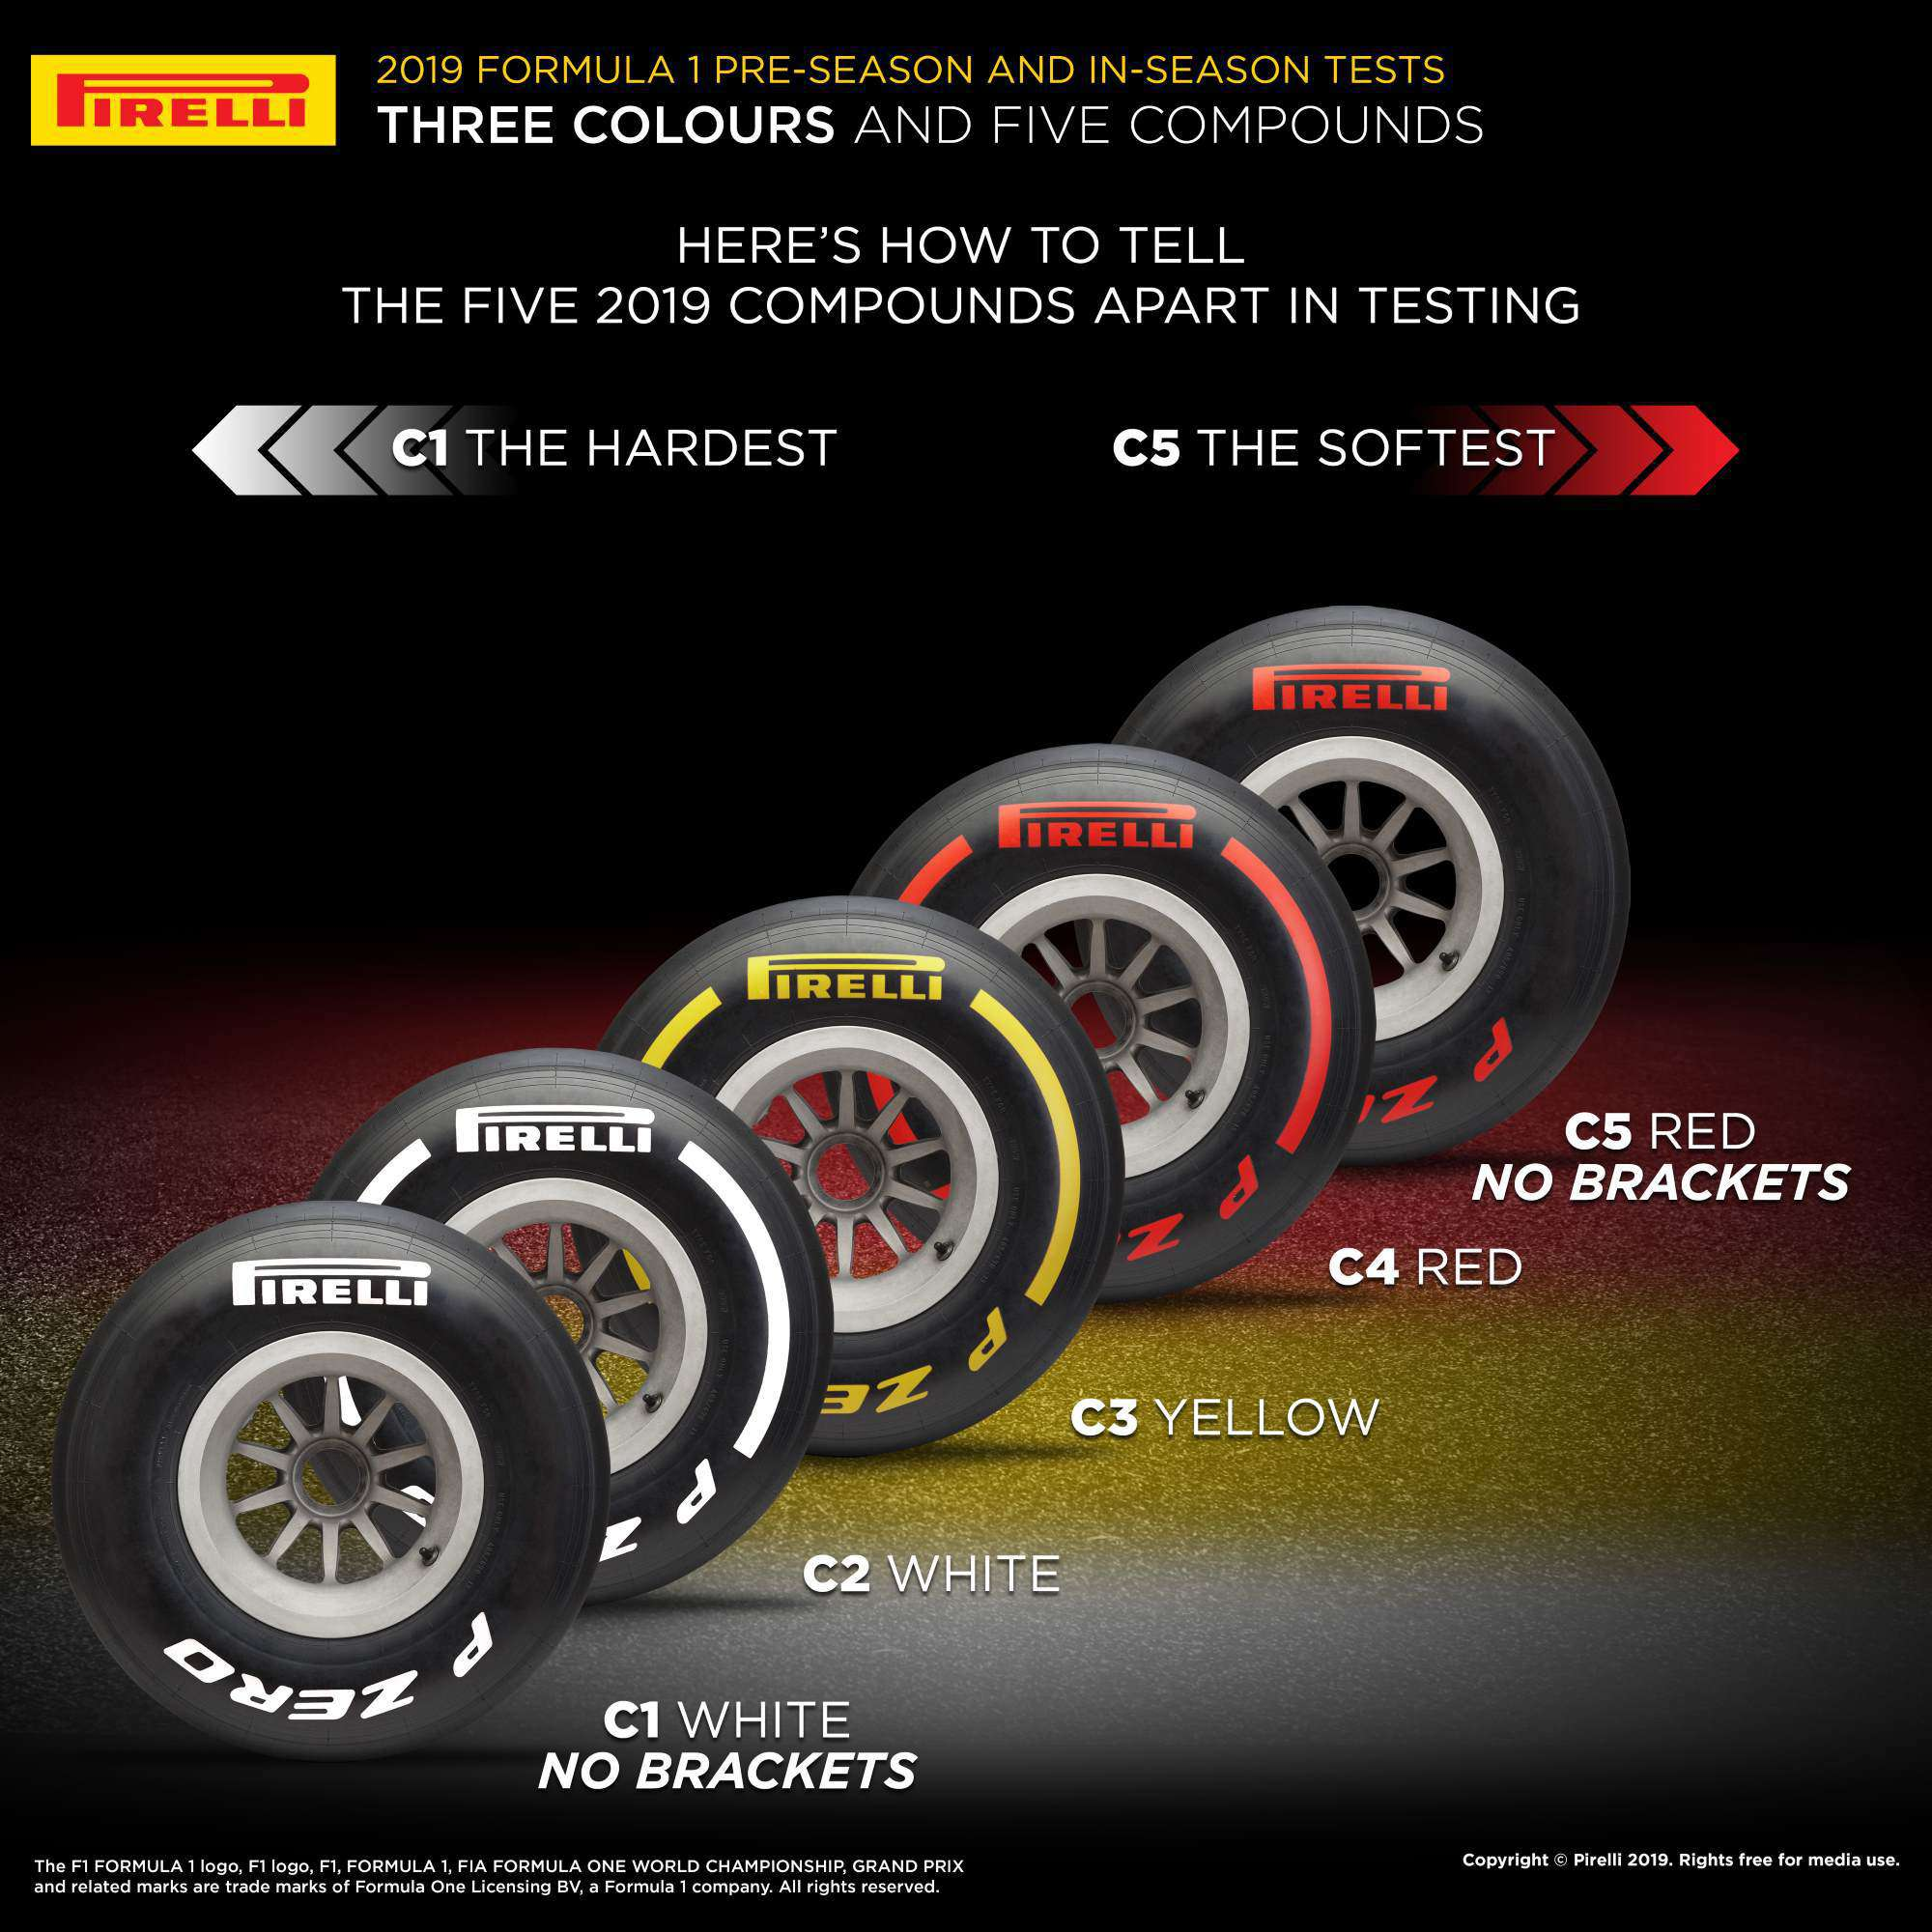 2019 Pirelli F1 tyre test colours code explained